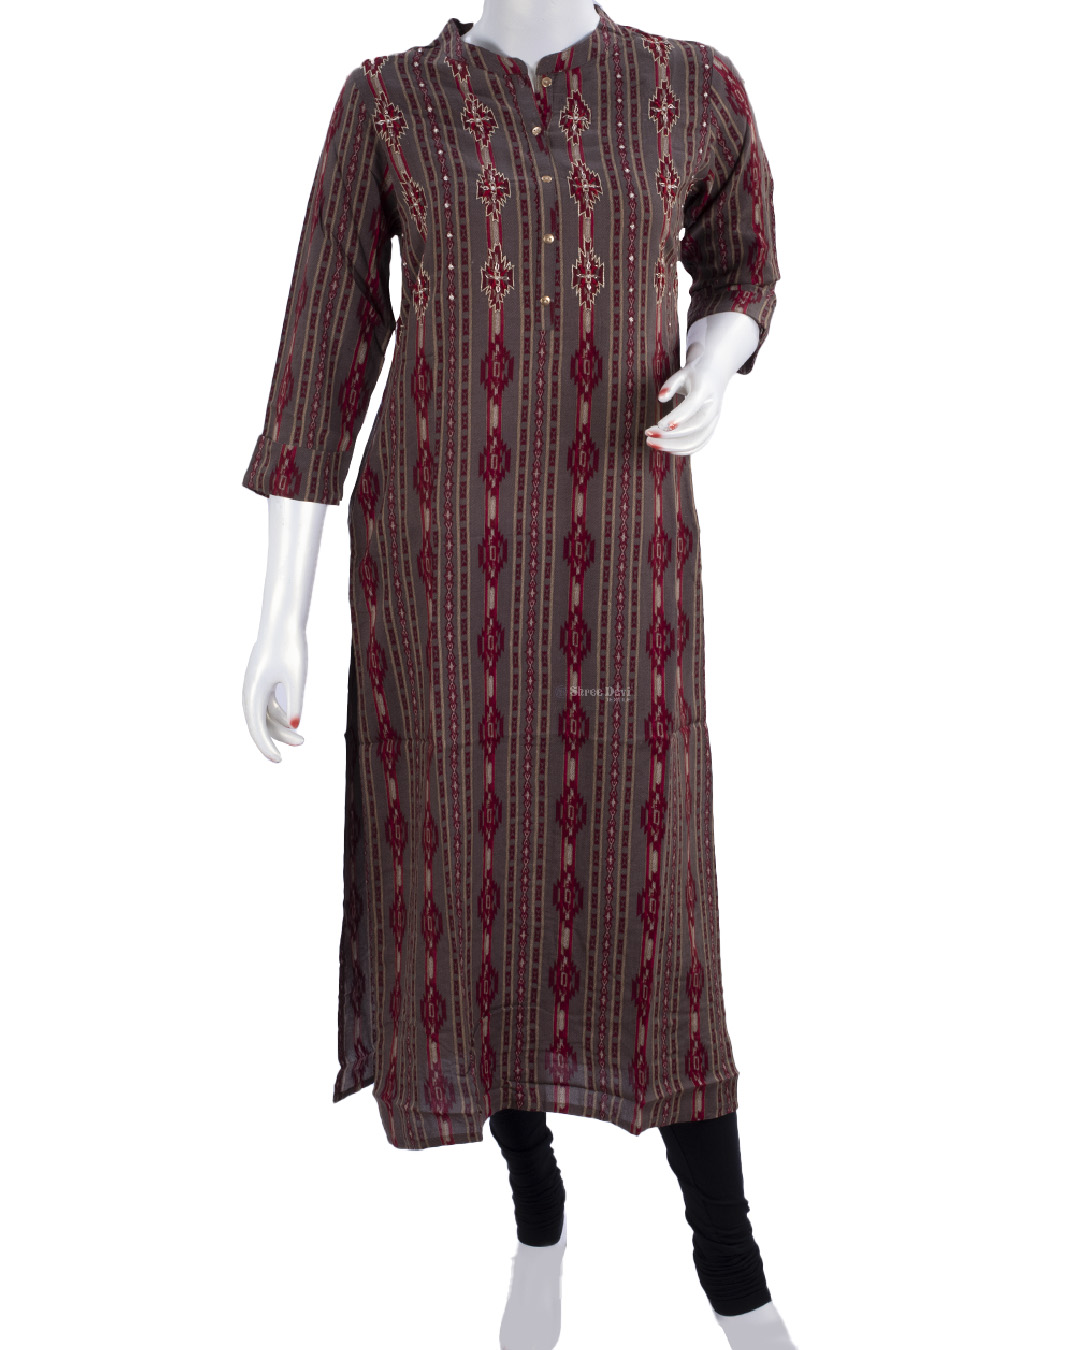 Brown Collar Kurti with Printed Design Stripes